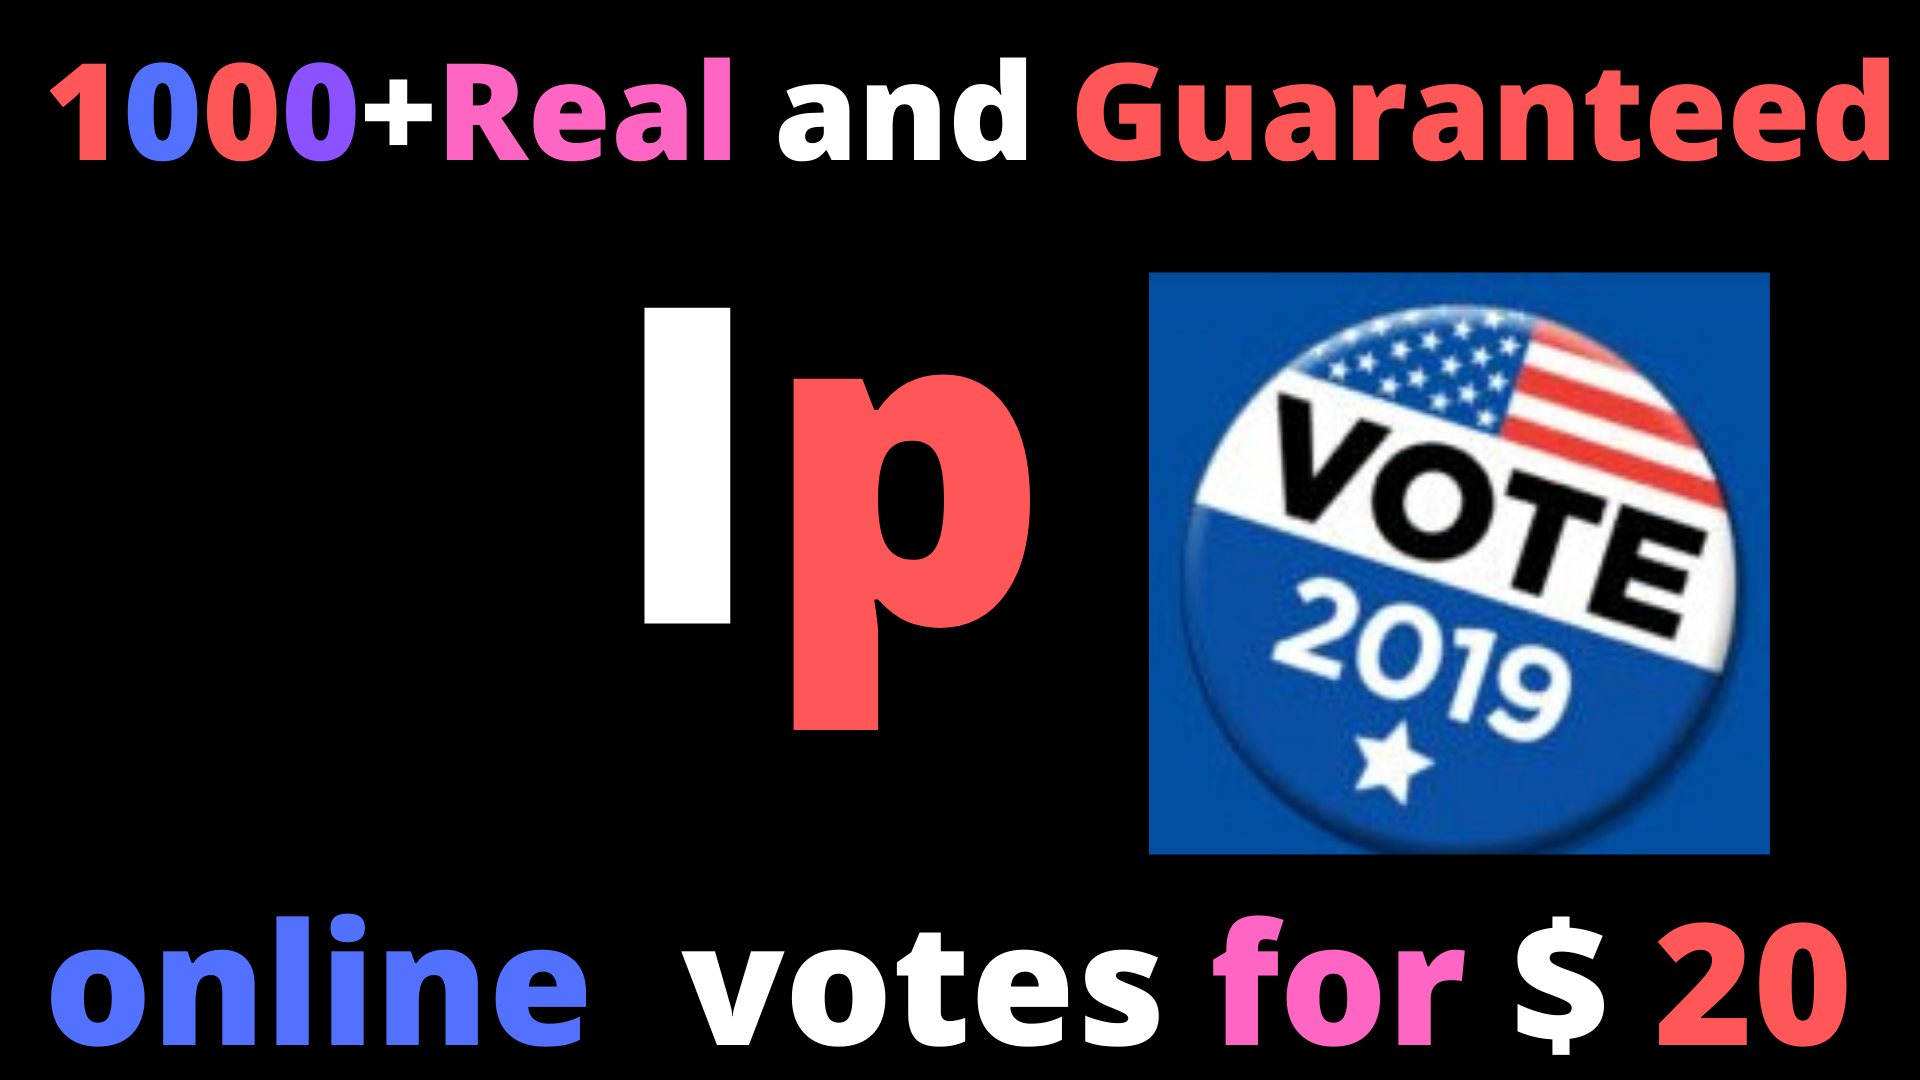 Provide you 1000+ Real and Guaranteed IP online voting contest votes for 20